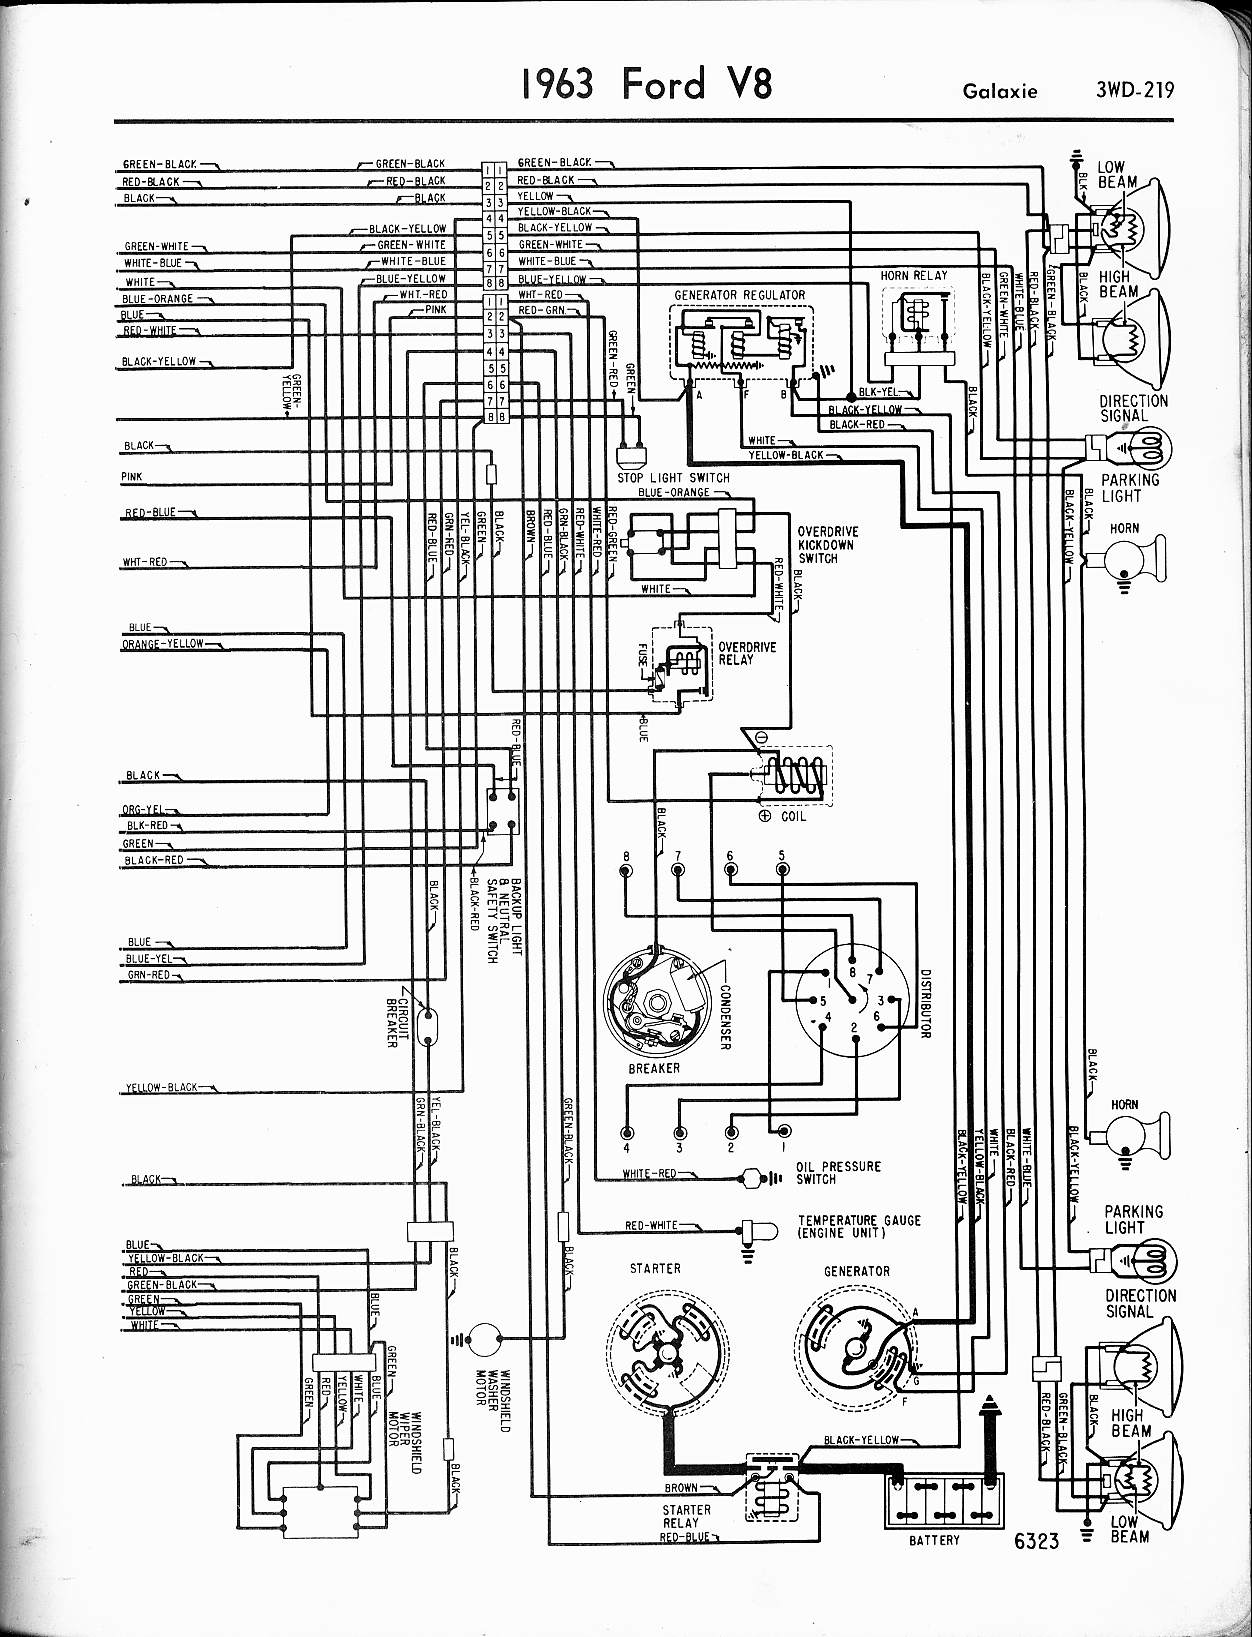 3utpd 1963 Ford Galaxie Temp Gauge Fuel Gauge Sending Unit on 1963 Ford Fairlane Wiring Diagram